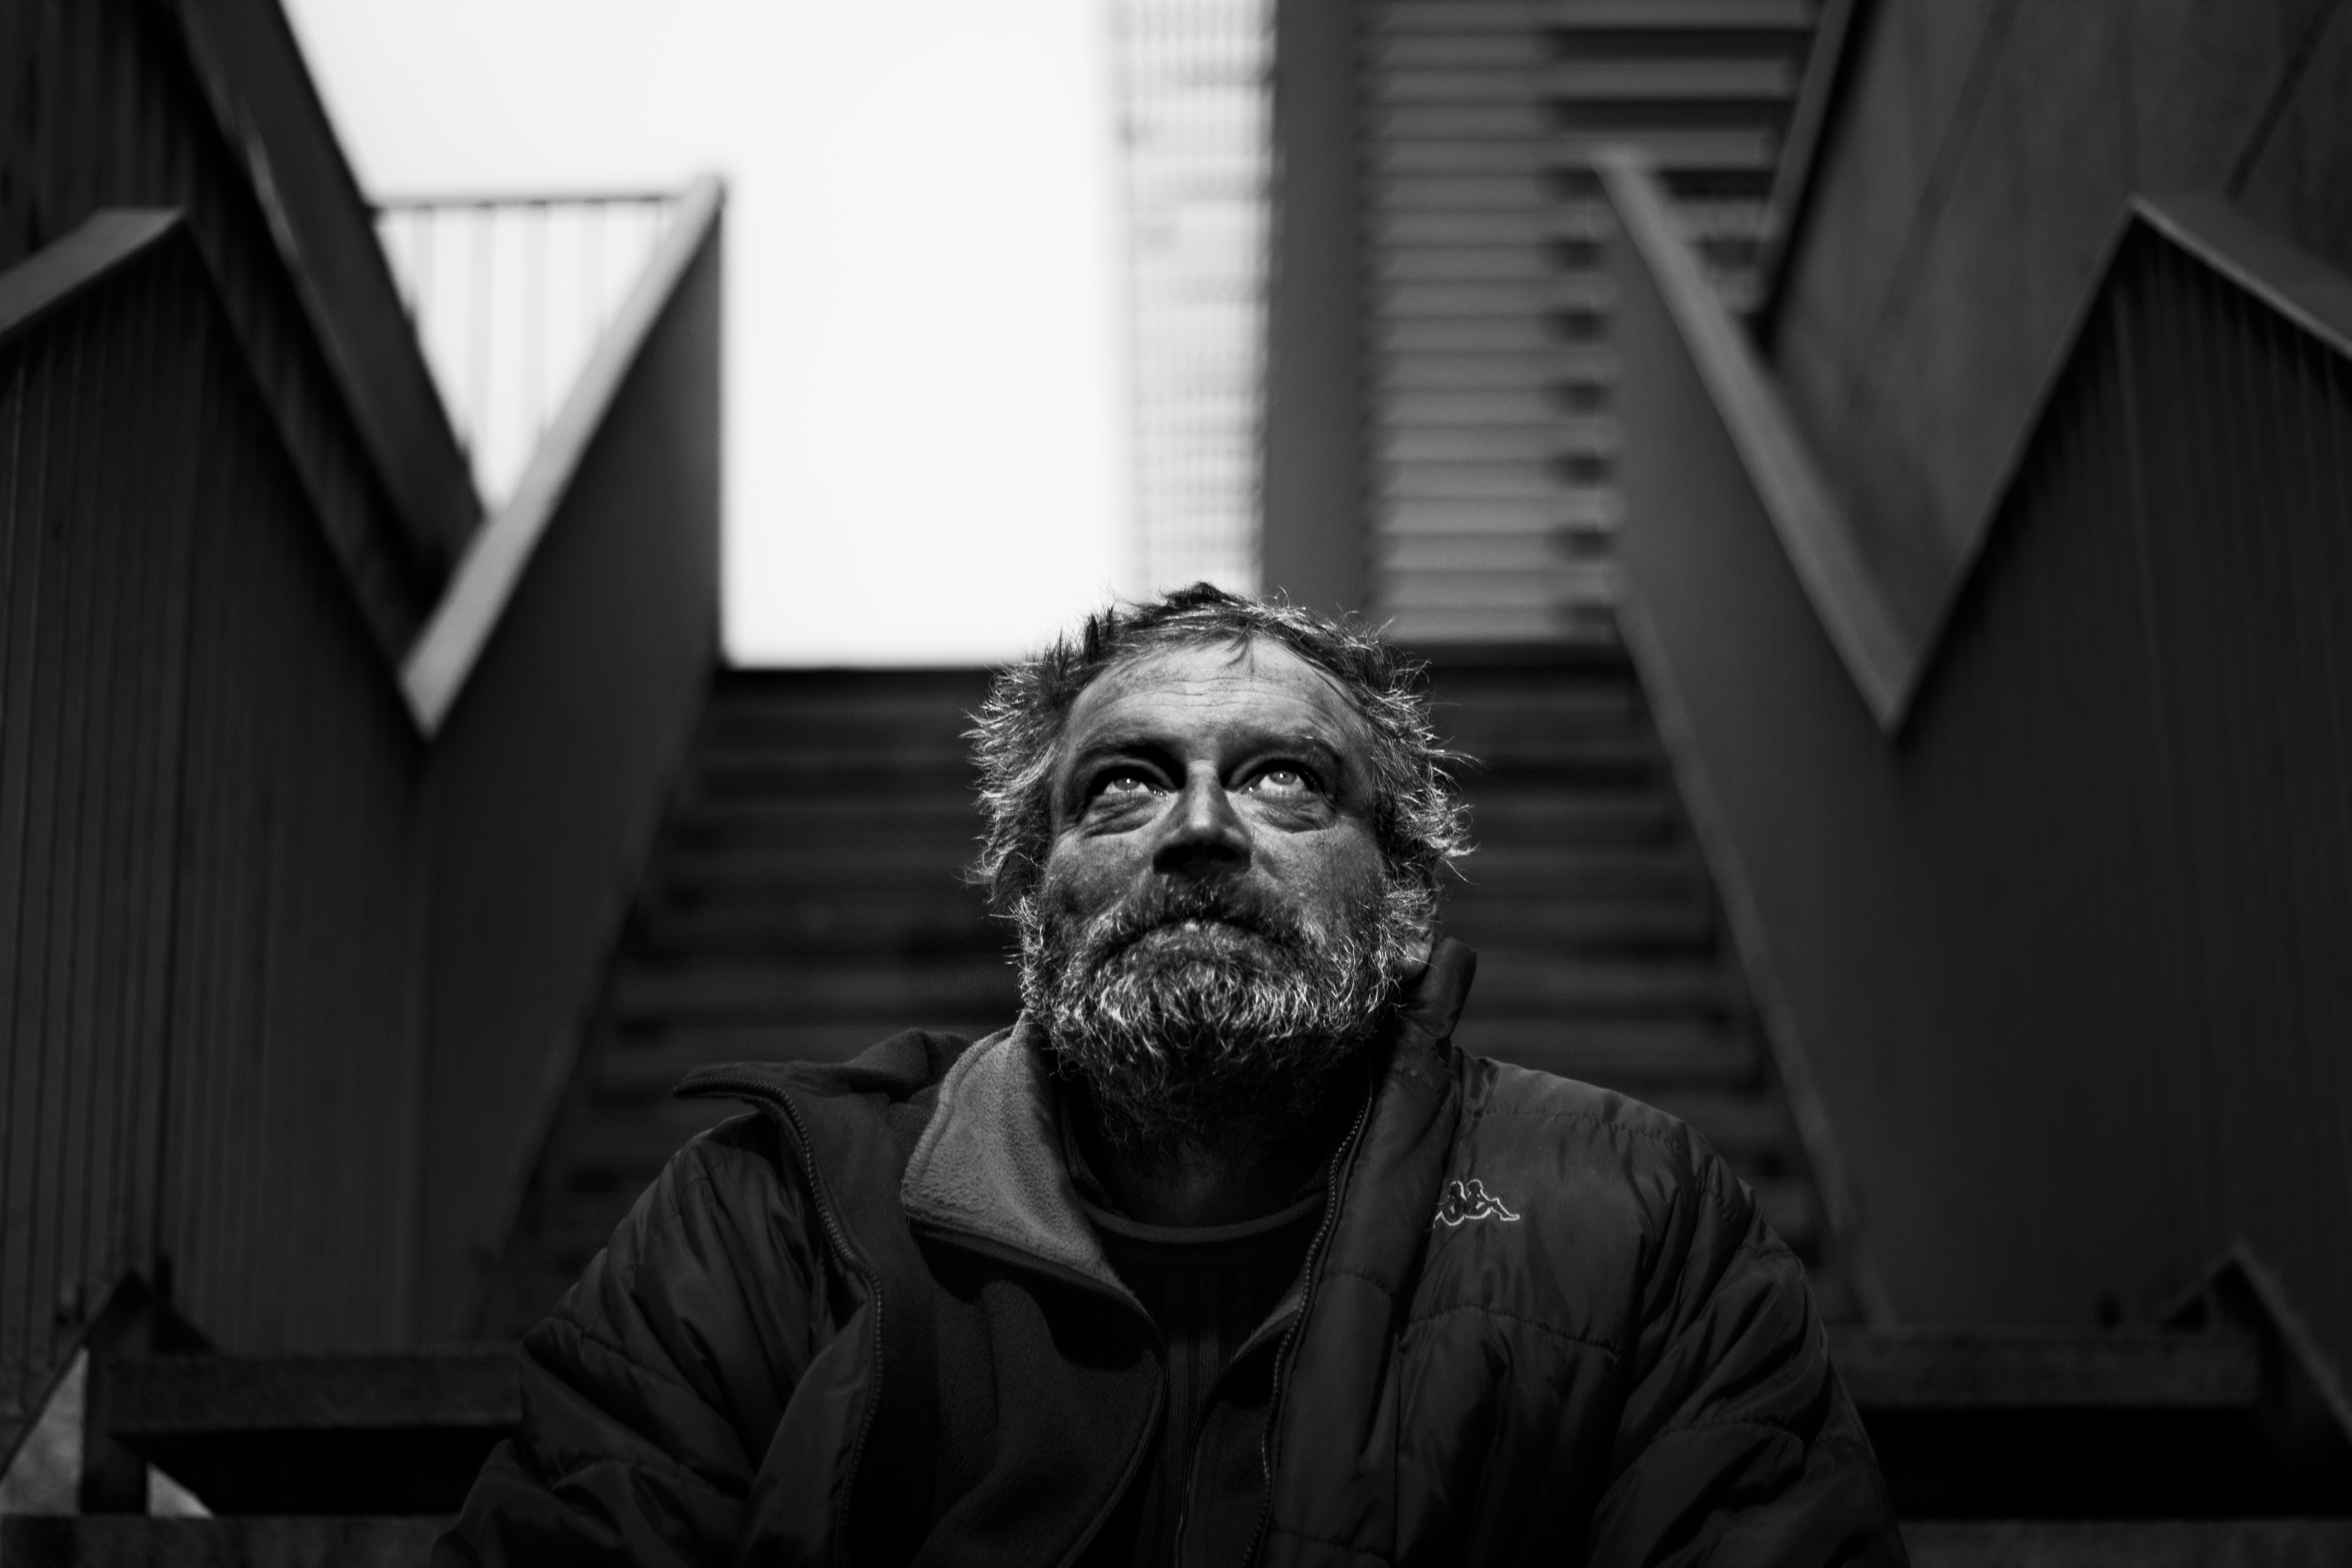 grayscale photography of man wearing black jacket